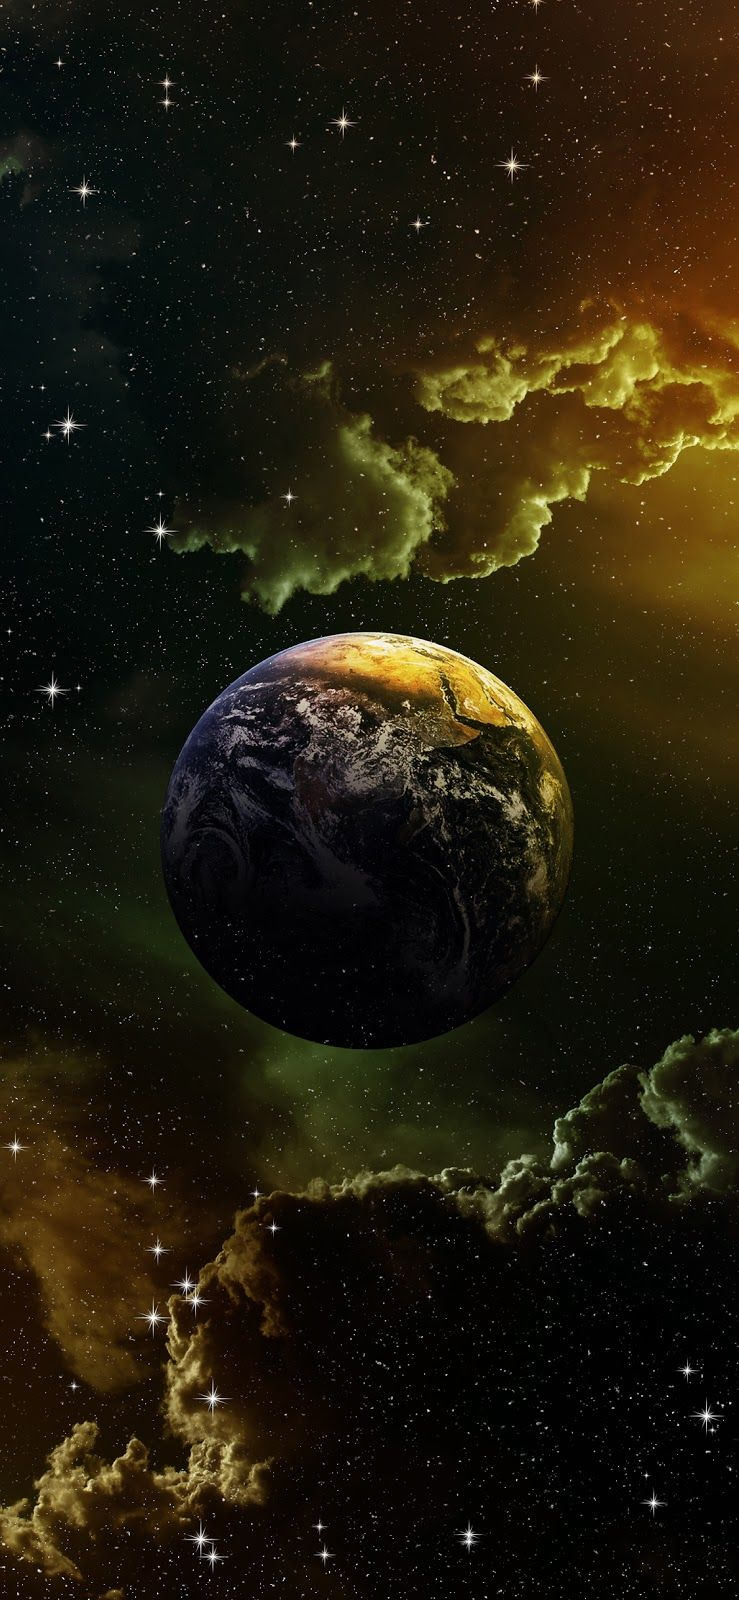 Earth (iPhone X) Background Wallpaper earth, Wallpaper